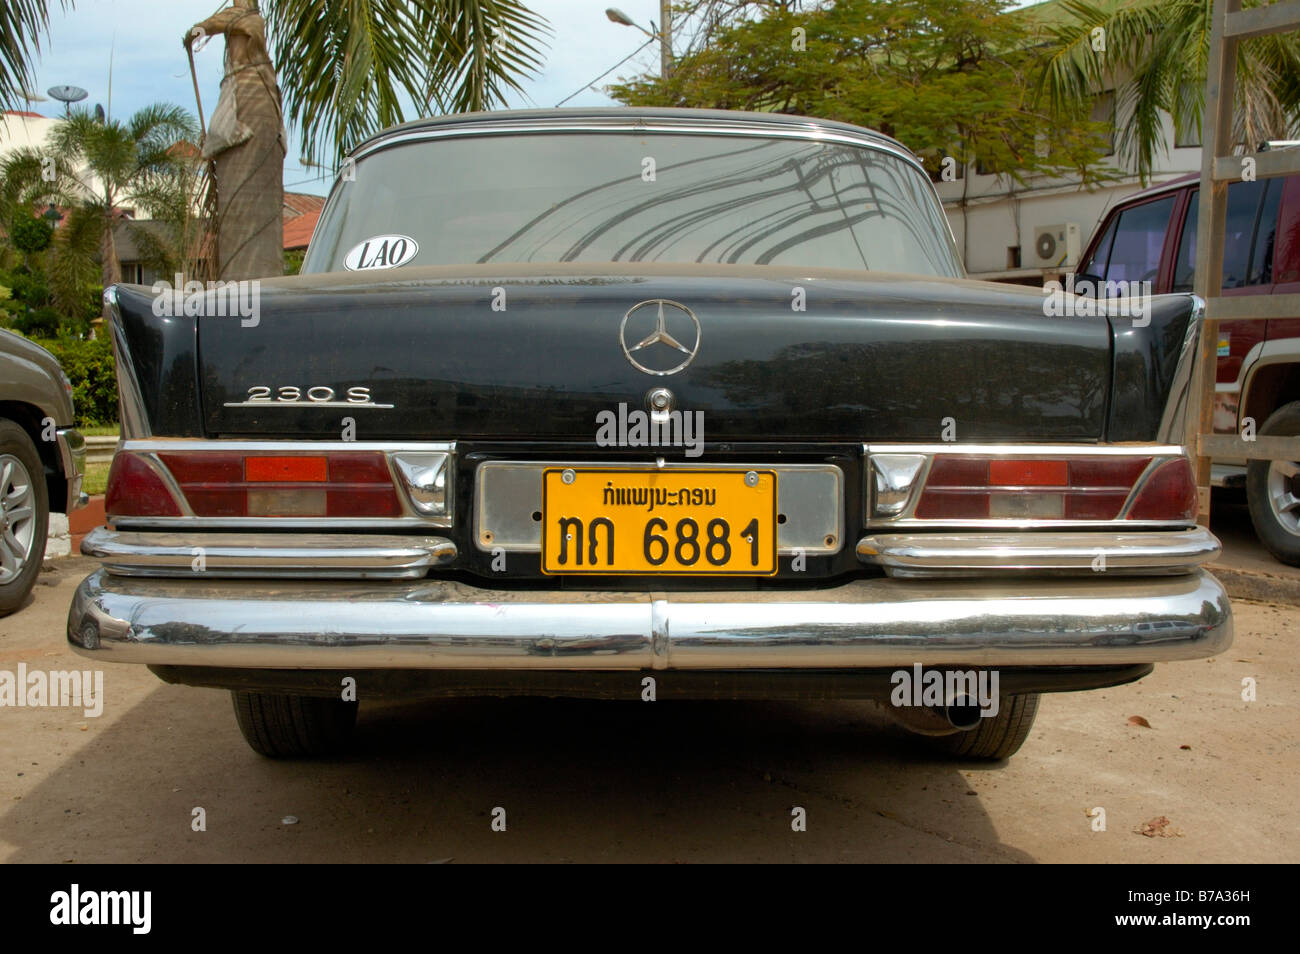 Vintage car, old black Mercedes 230S with a Laotian number plate ...